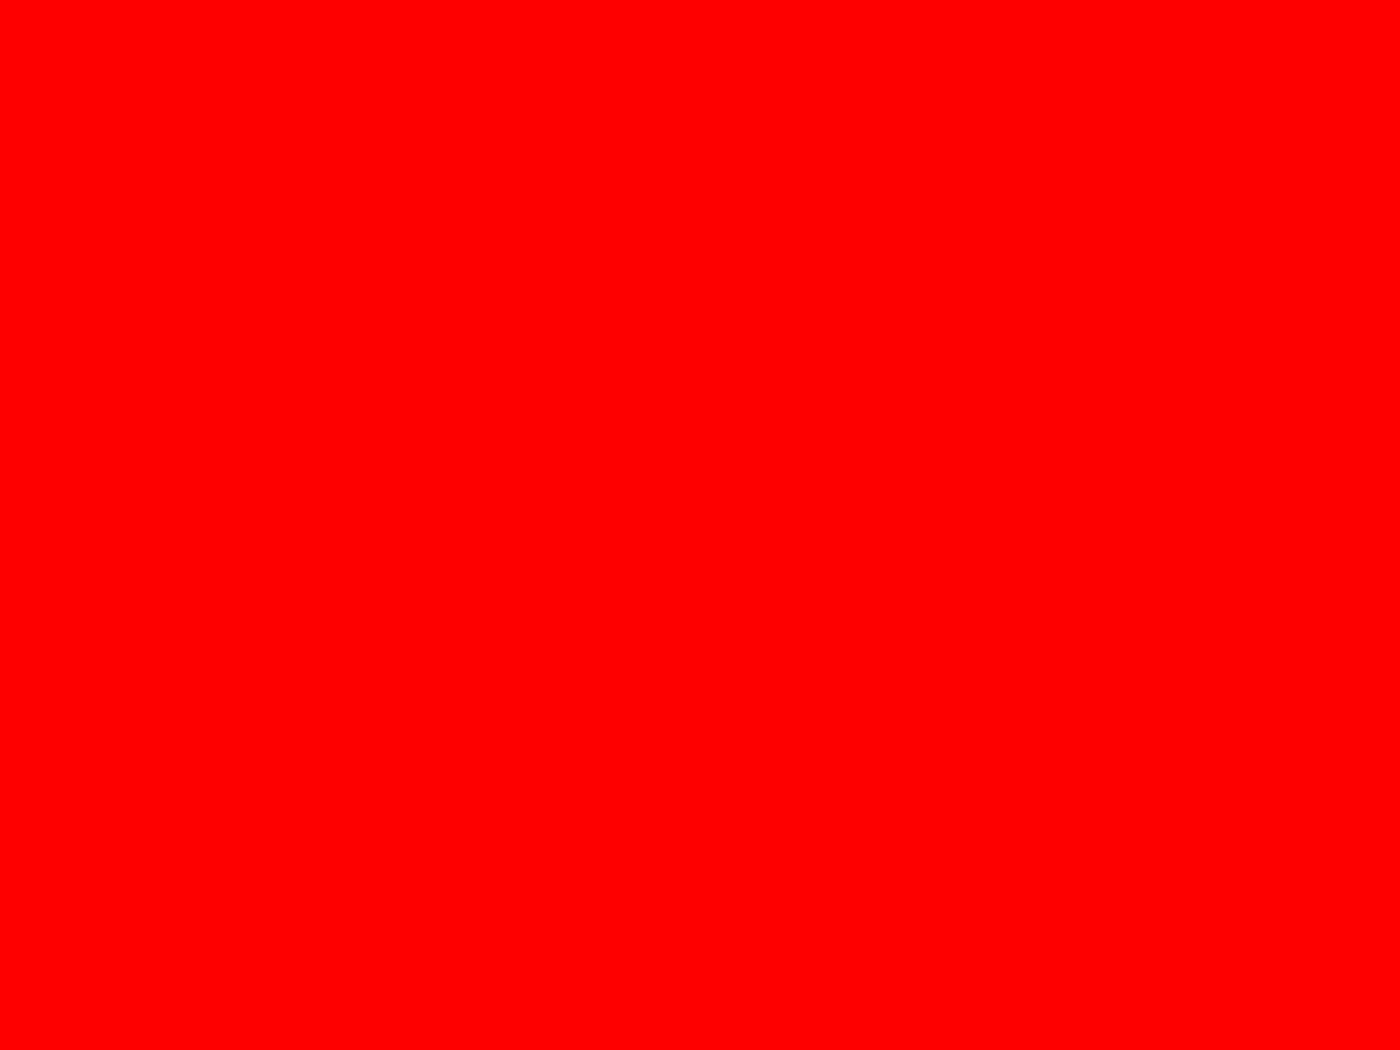 1400x1050 Red Solid Color Background